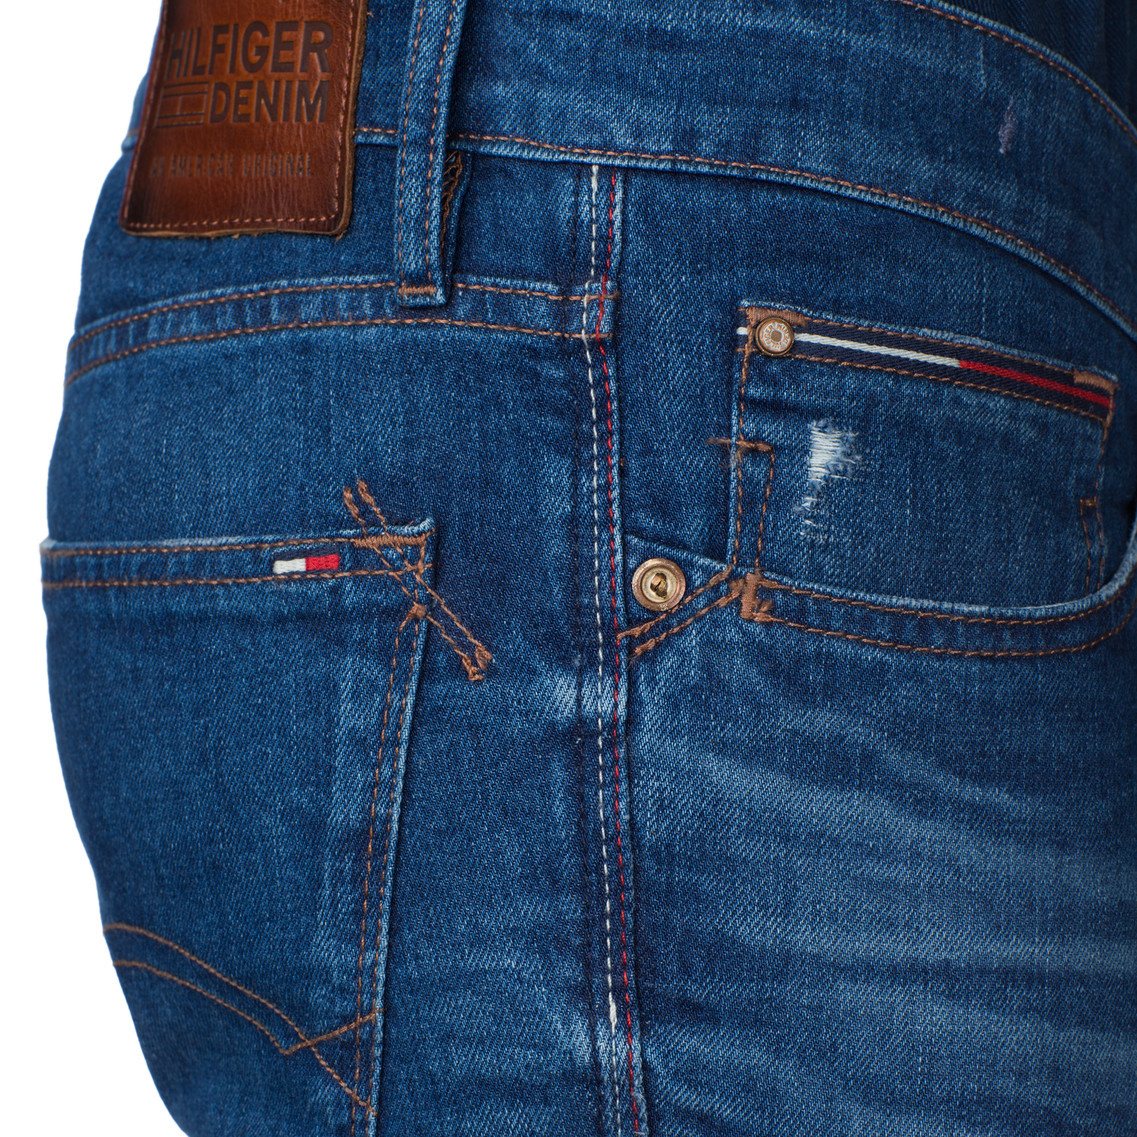 9c90225de Tommy Hilfiger Ronan Comfort Fit Jeans in Blue for Men - Lyst